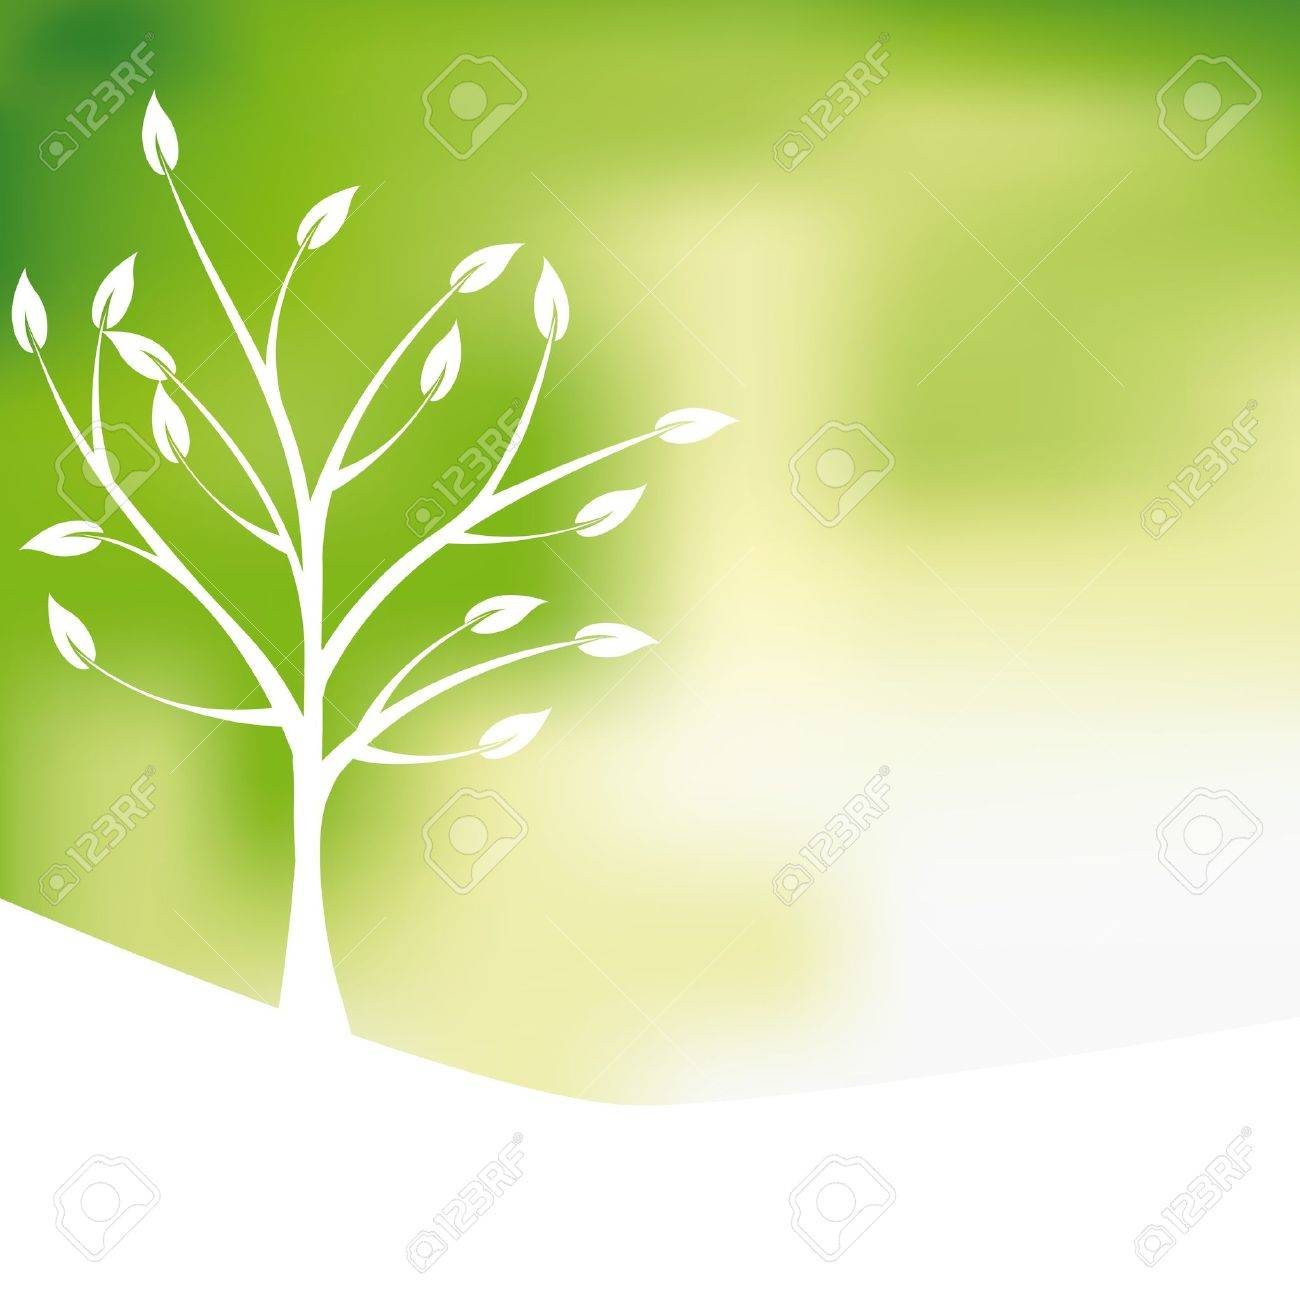 Green Tree Design Background Abstract Royalty Free Cliparts Vectors And Stock Illustration Image 11897666